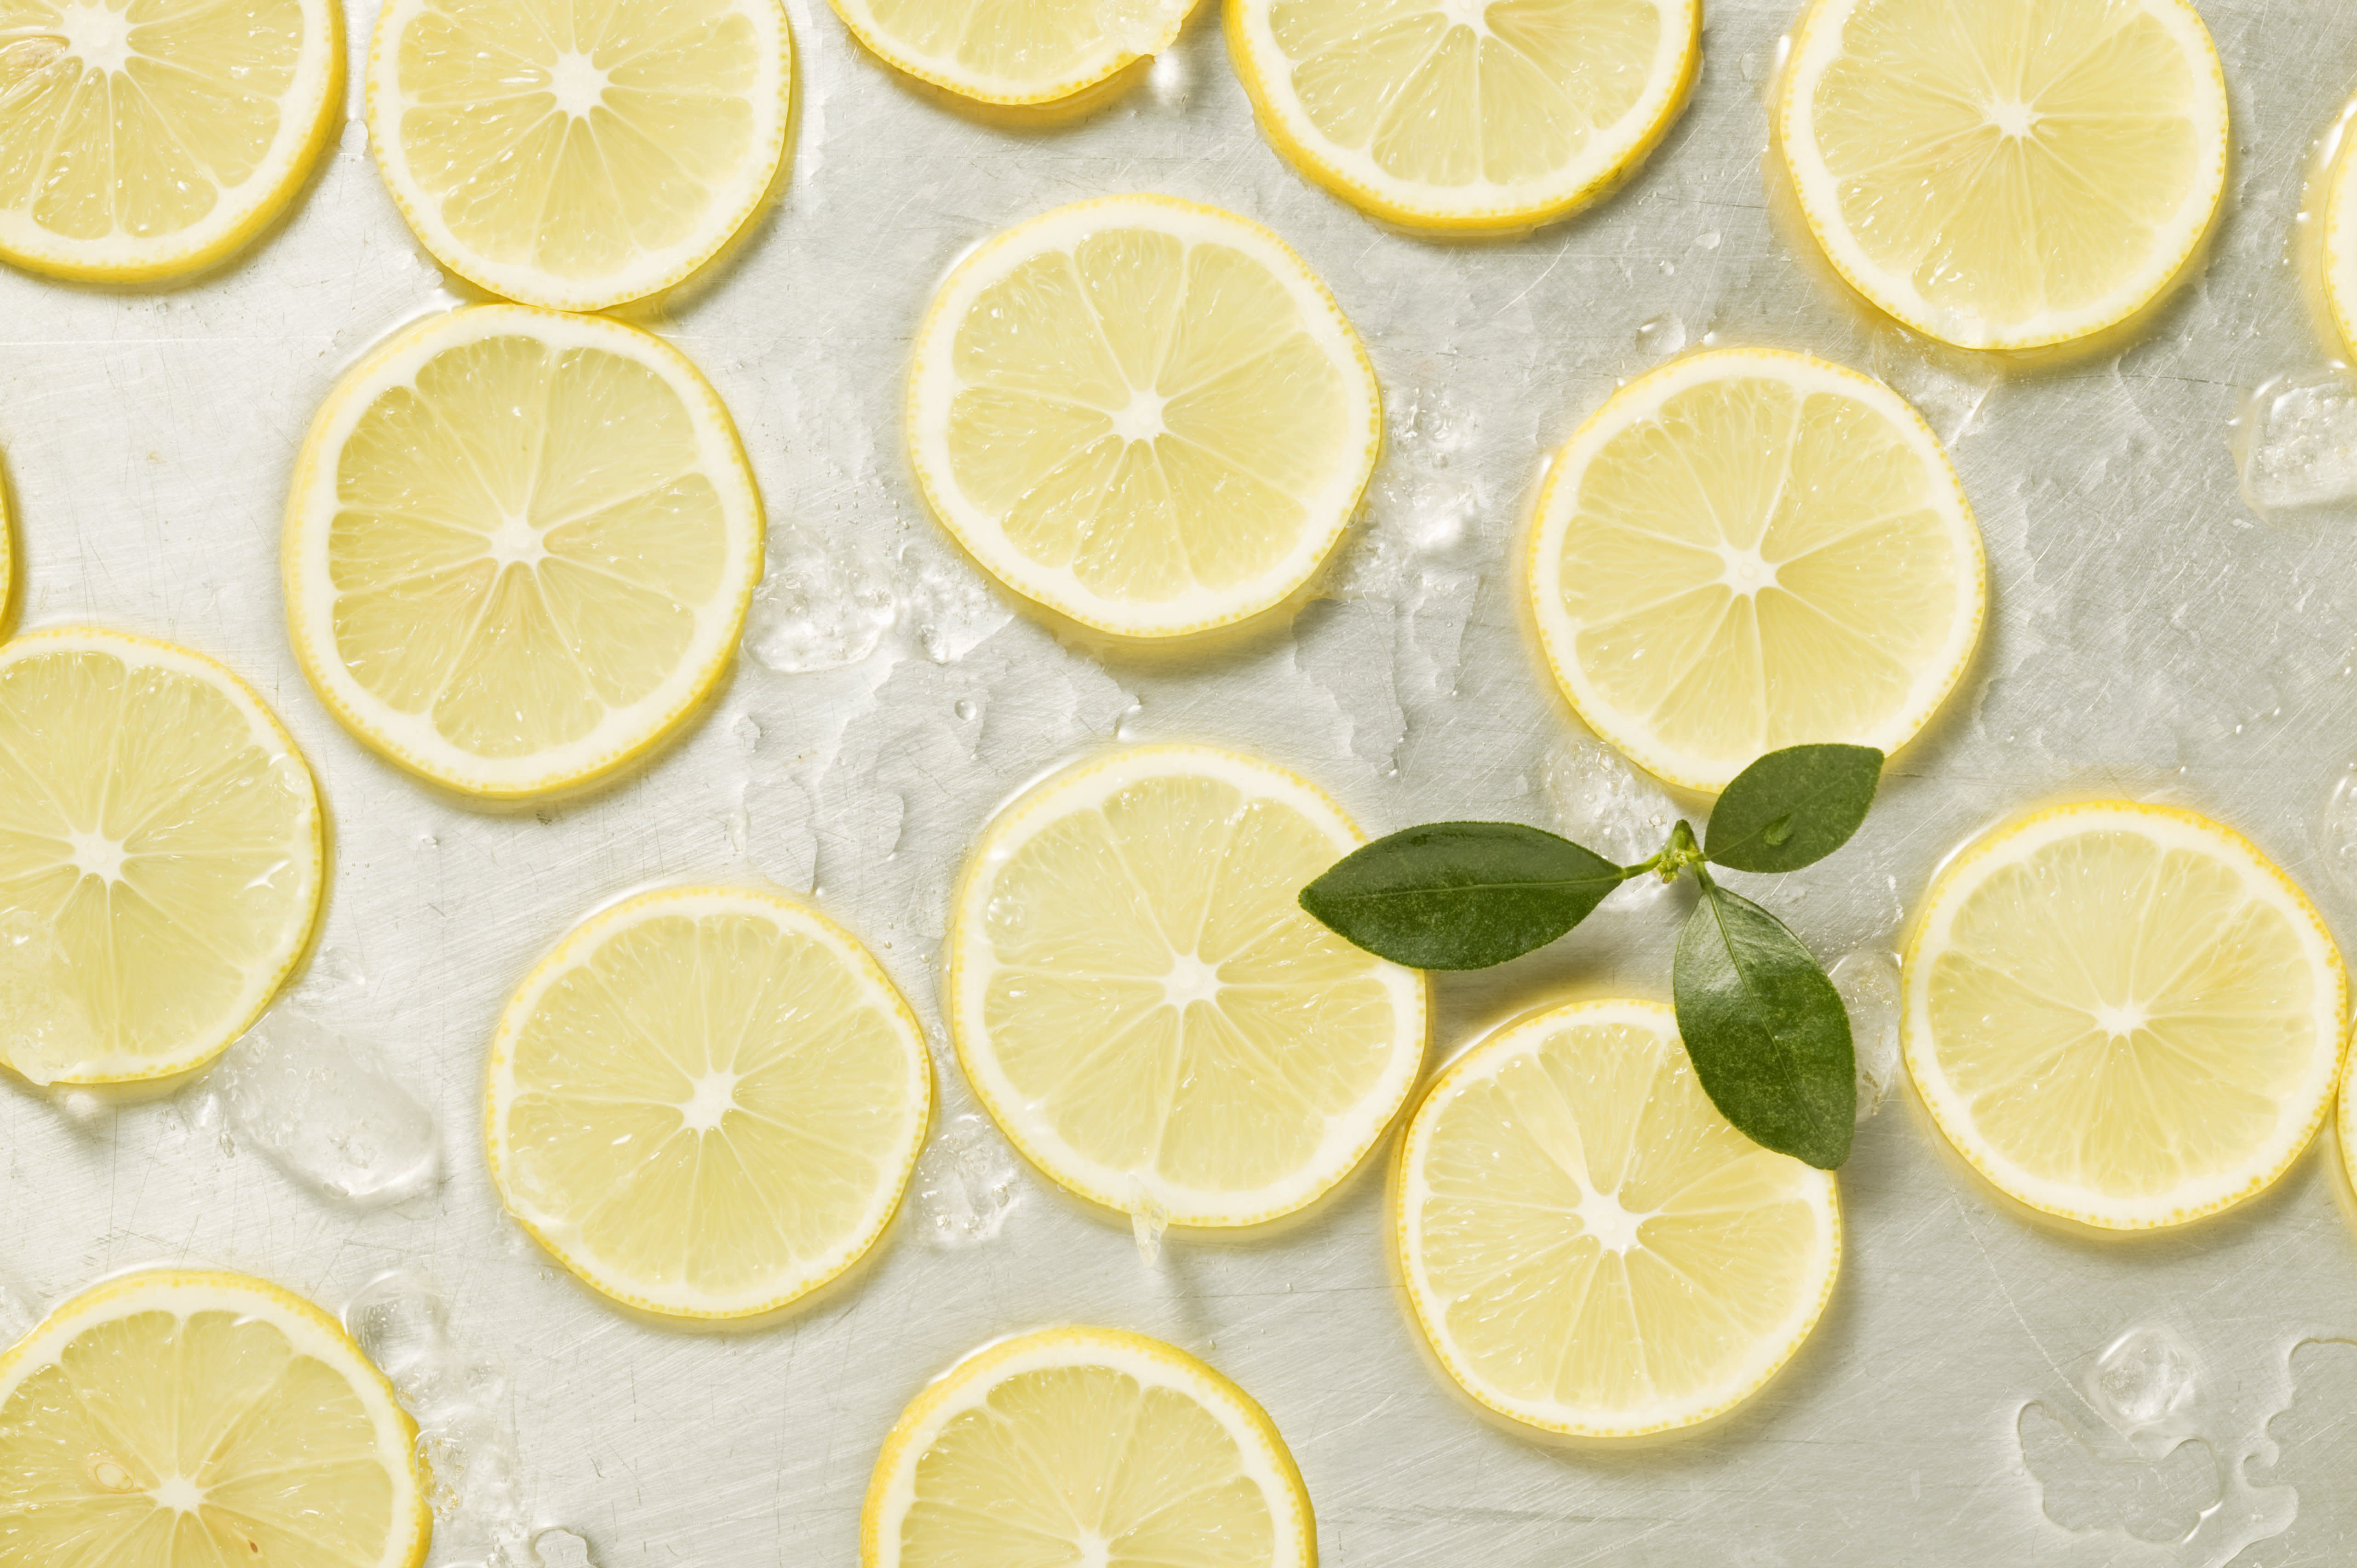 8a538f8d0c6 You Asked: Will Drinking Lemon Water Help Me Lose Weight?